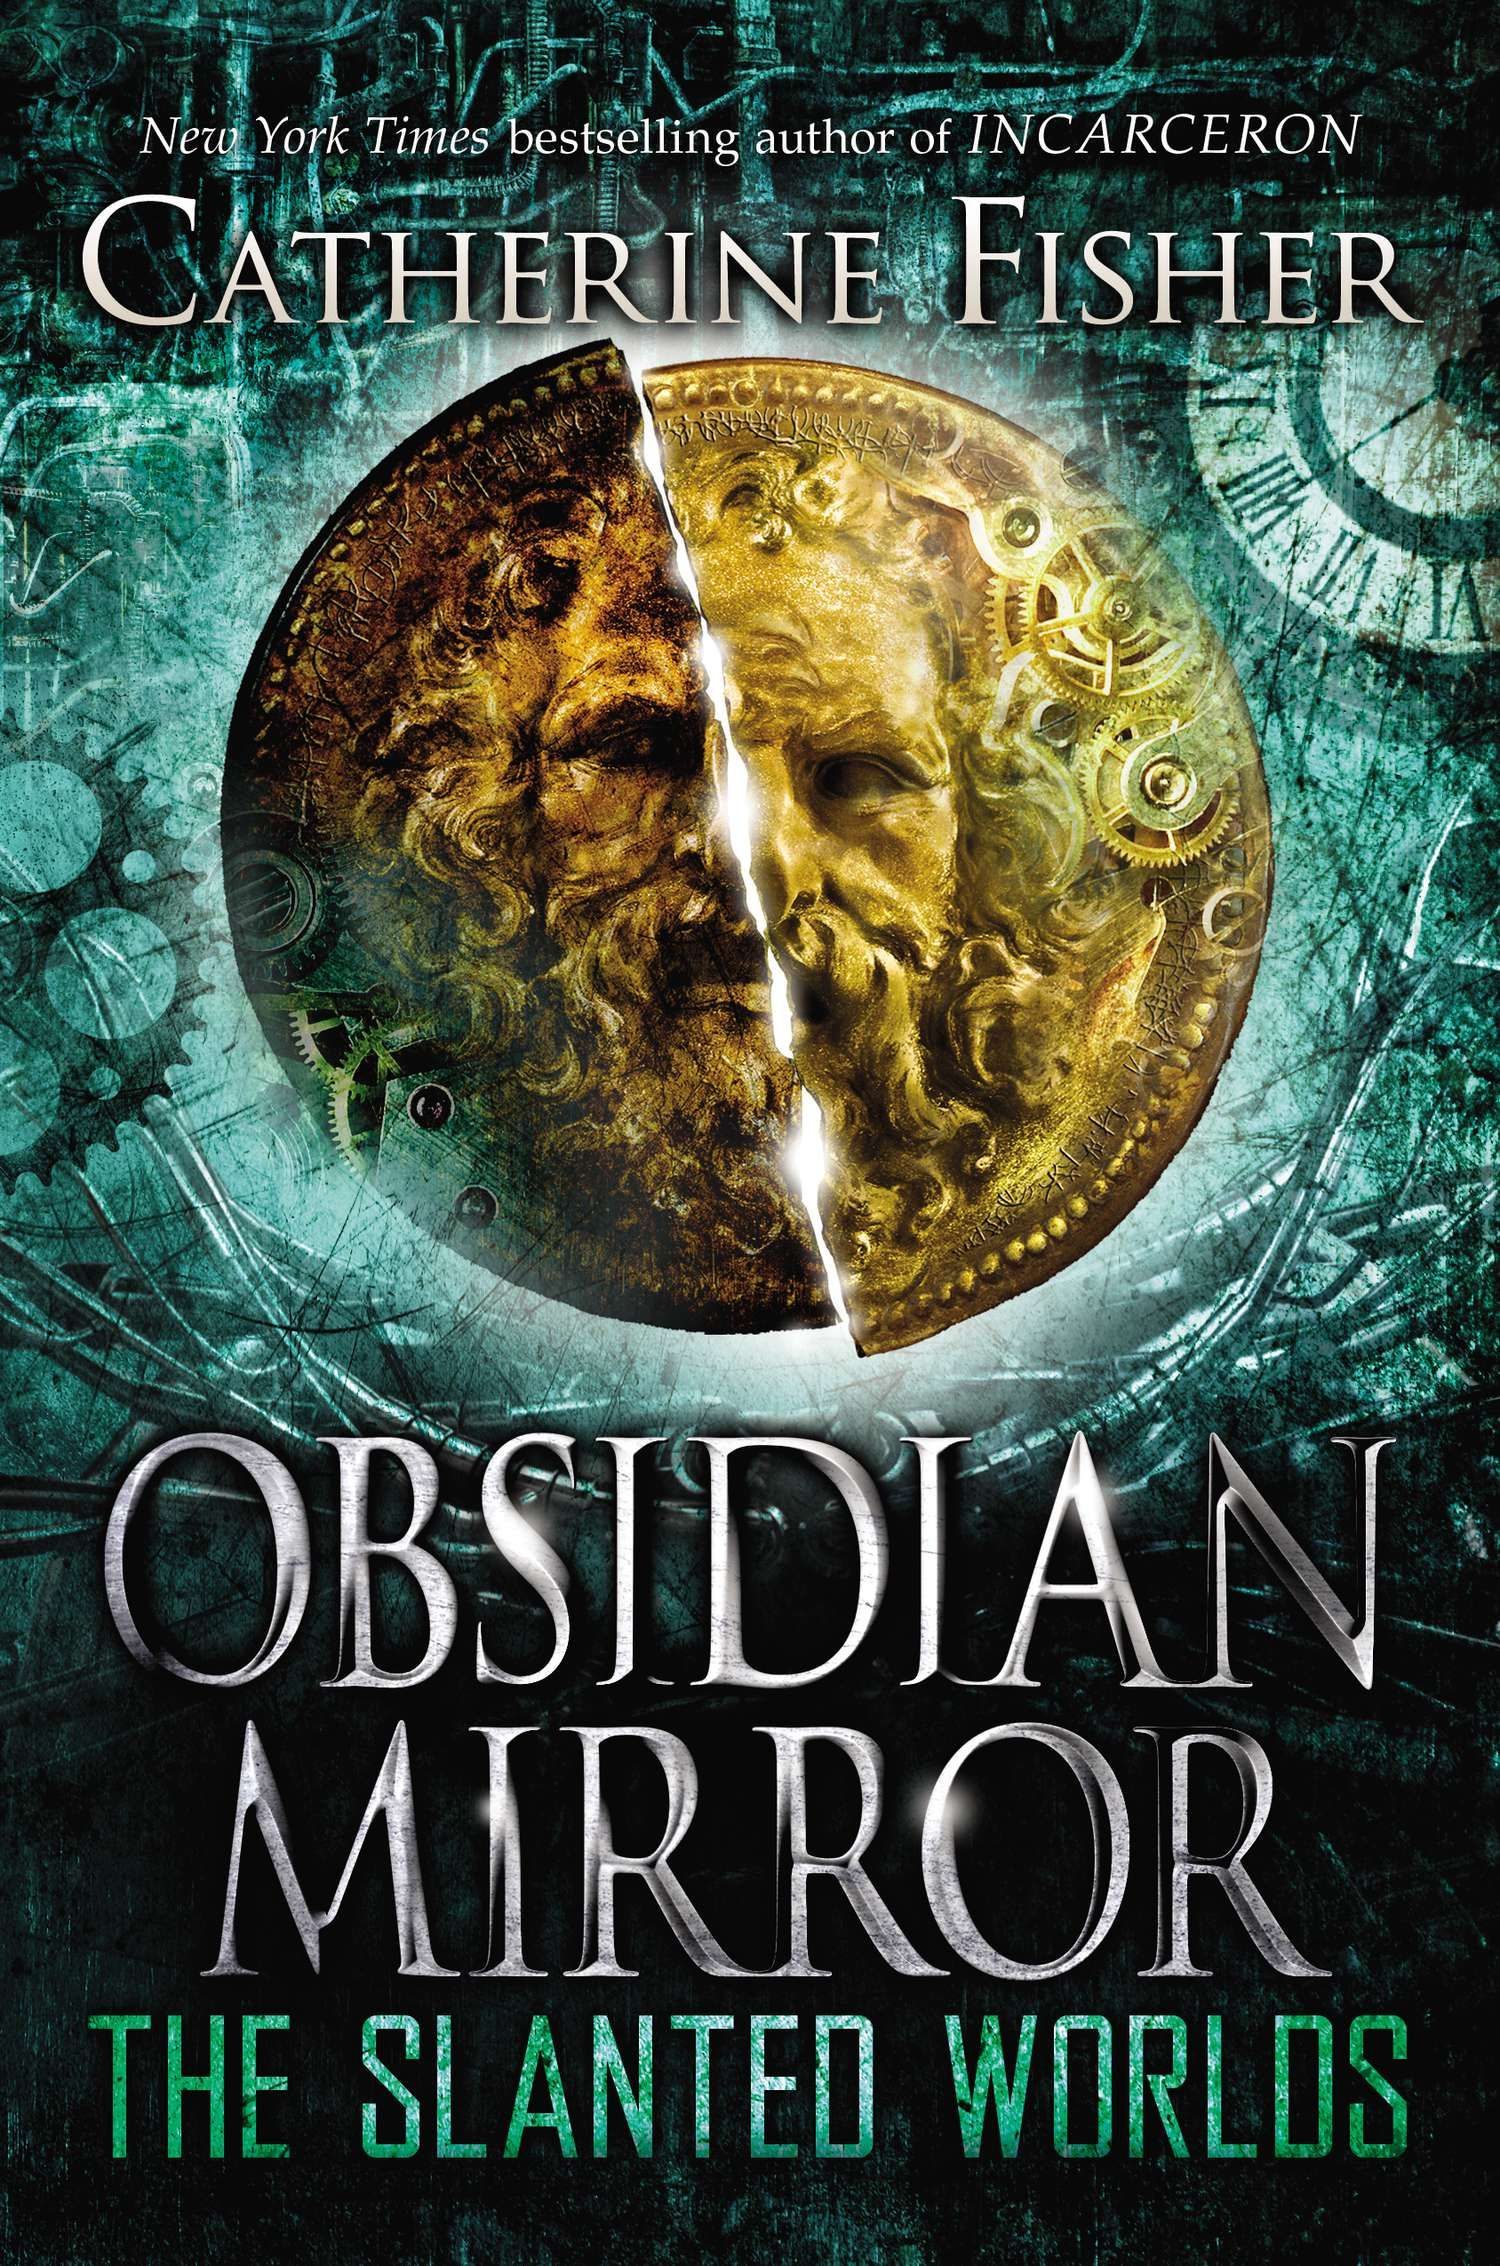 Jake sarah and oberon venn continue their fight for control of the jake sarah and oberon venn continue their fight for control of the obsidian mirror and whoever wins will either save a life change the past fandeluxe Gallery